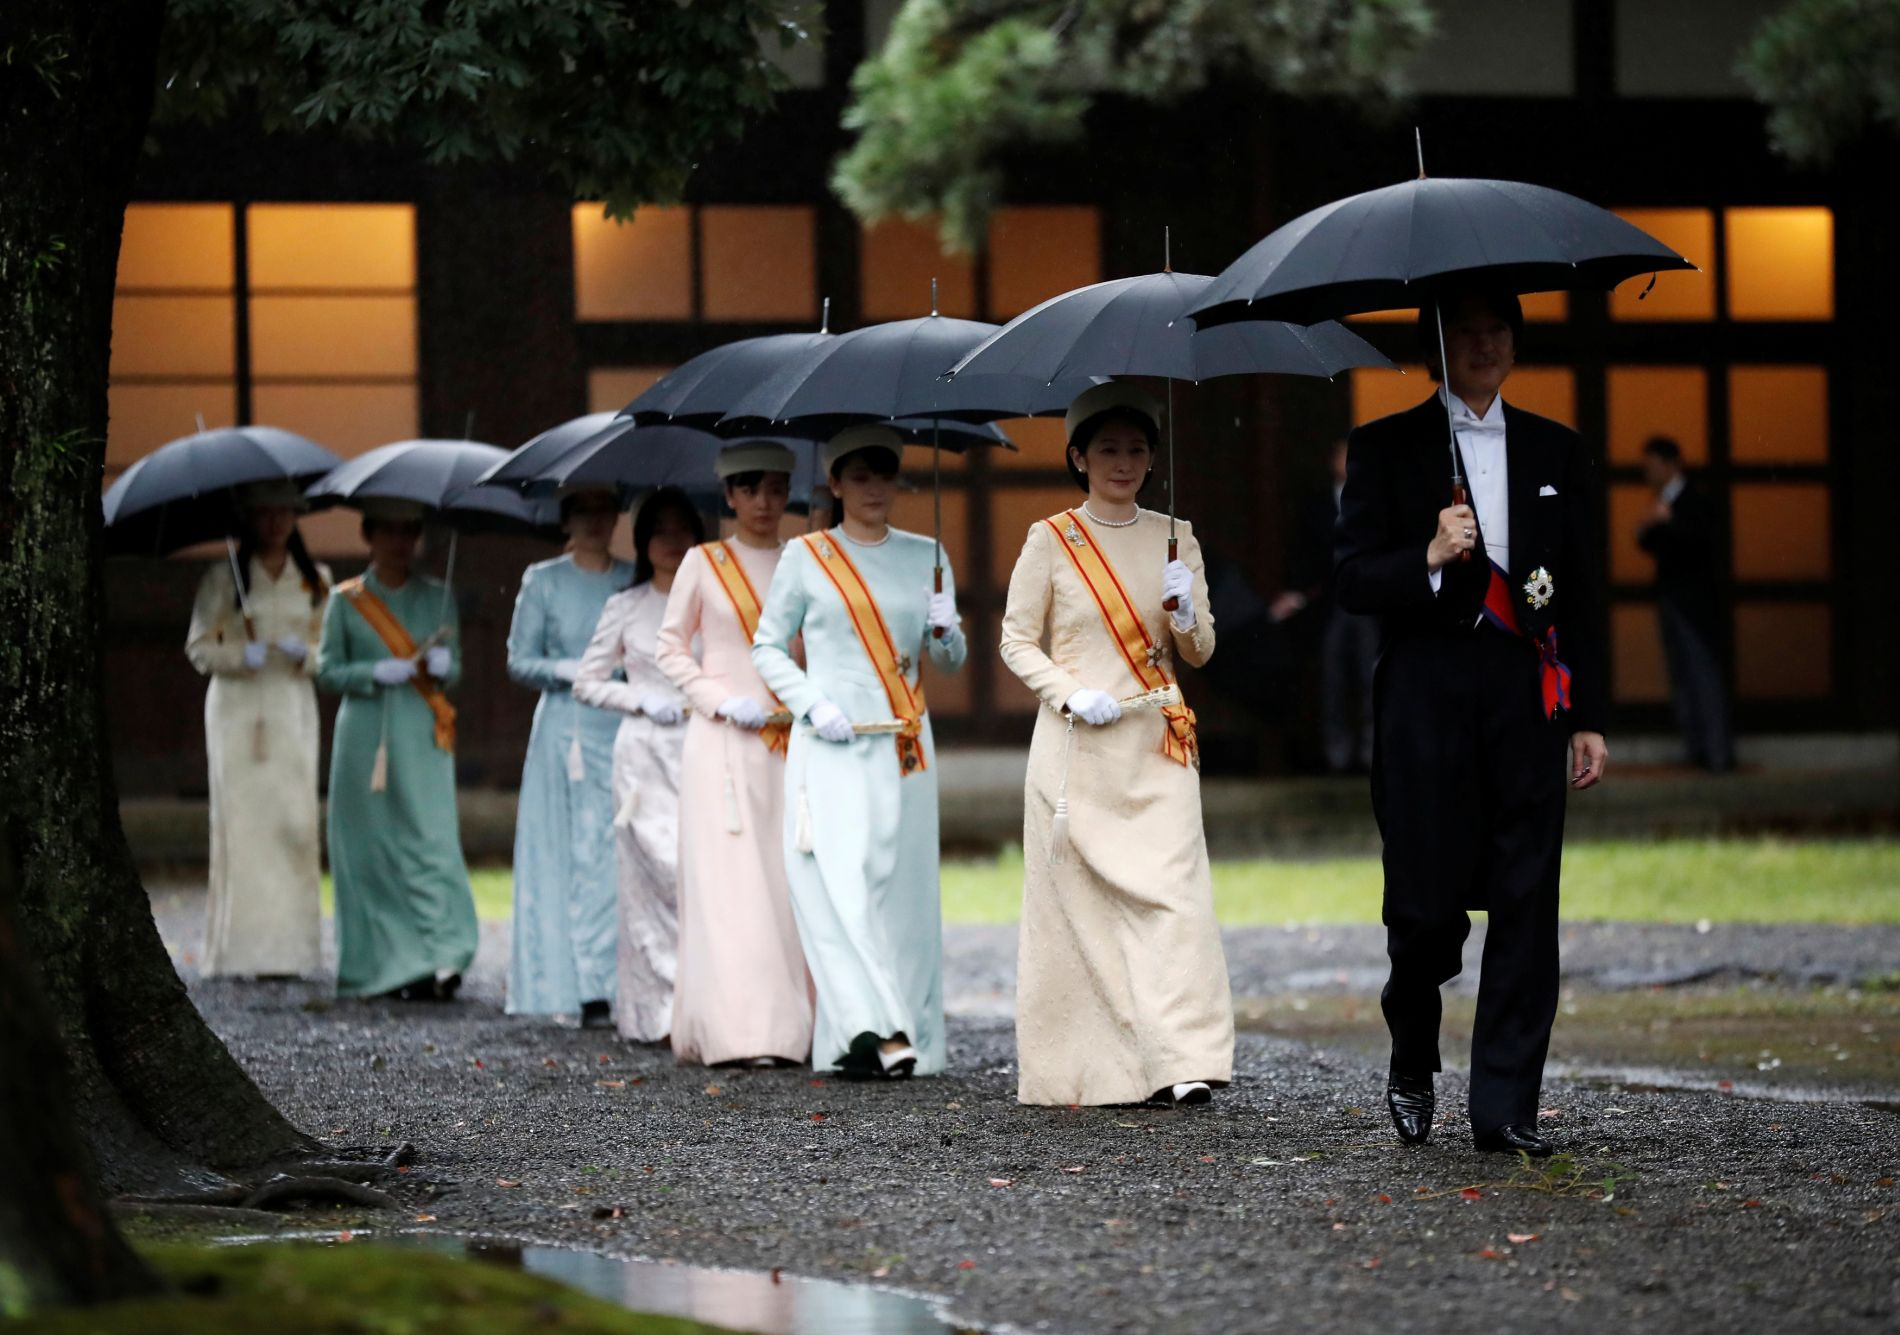 Japan's Prince Akishino and Princess Kiko arrive at the ceremony site where Emperor Naruhito will report the conduct of the enthronement ceremony at the Imperial Sanctuary inside the Imperial Palace in Tokyo